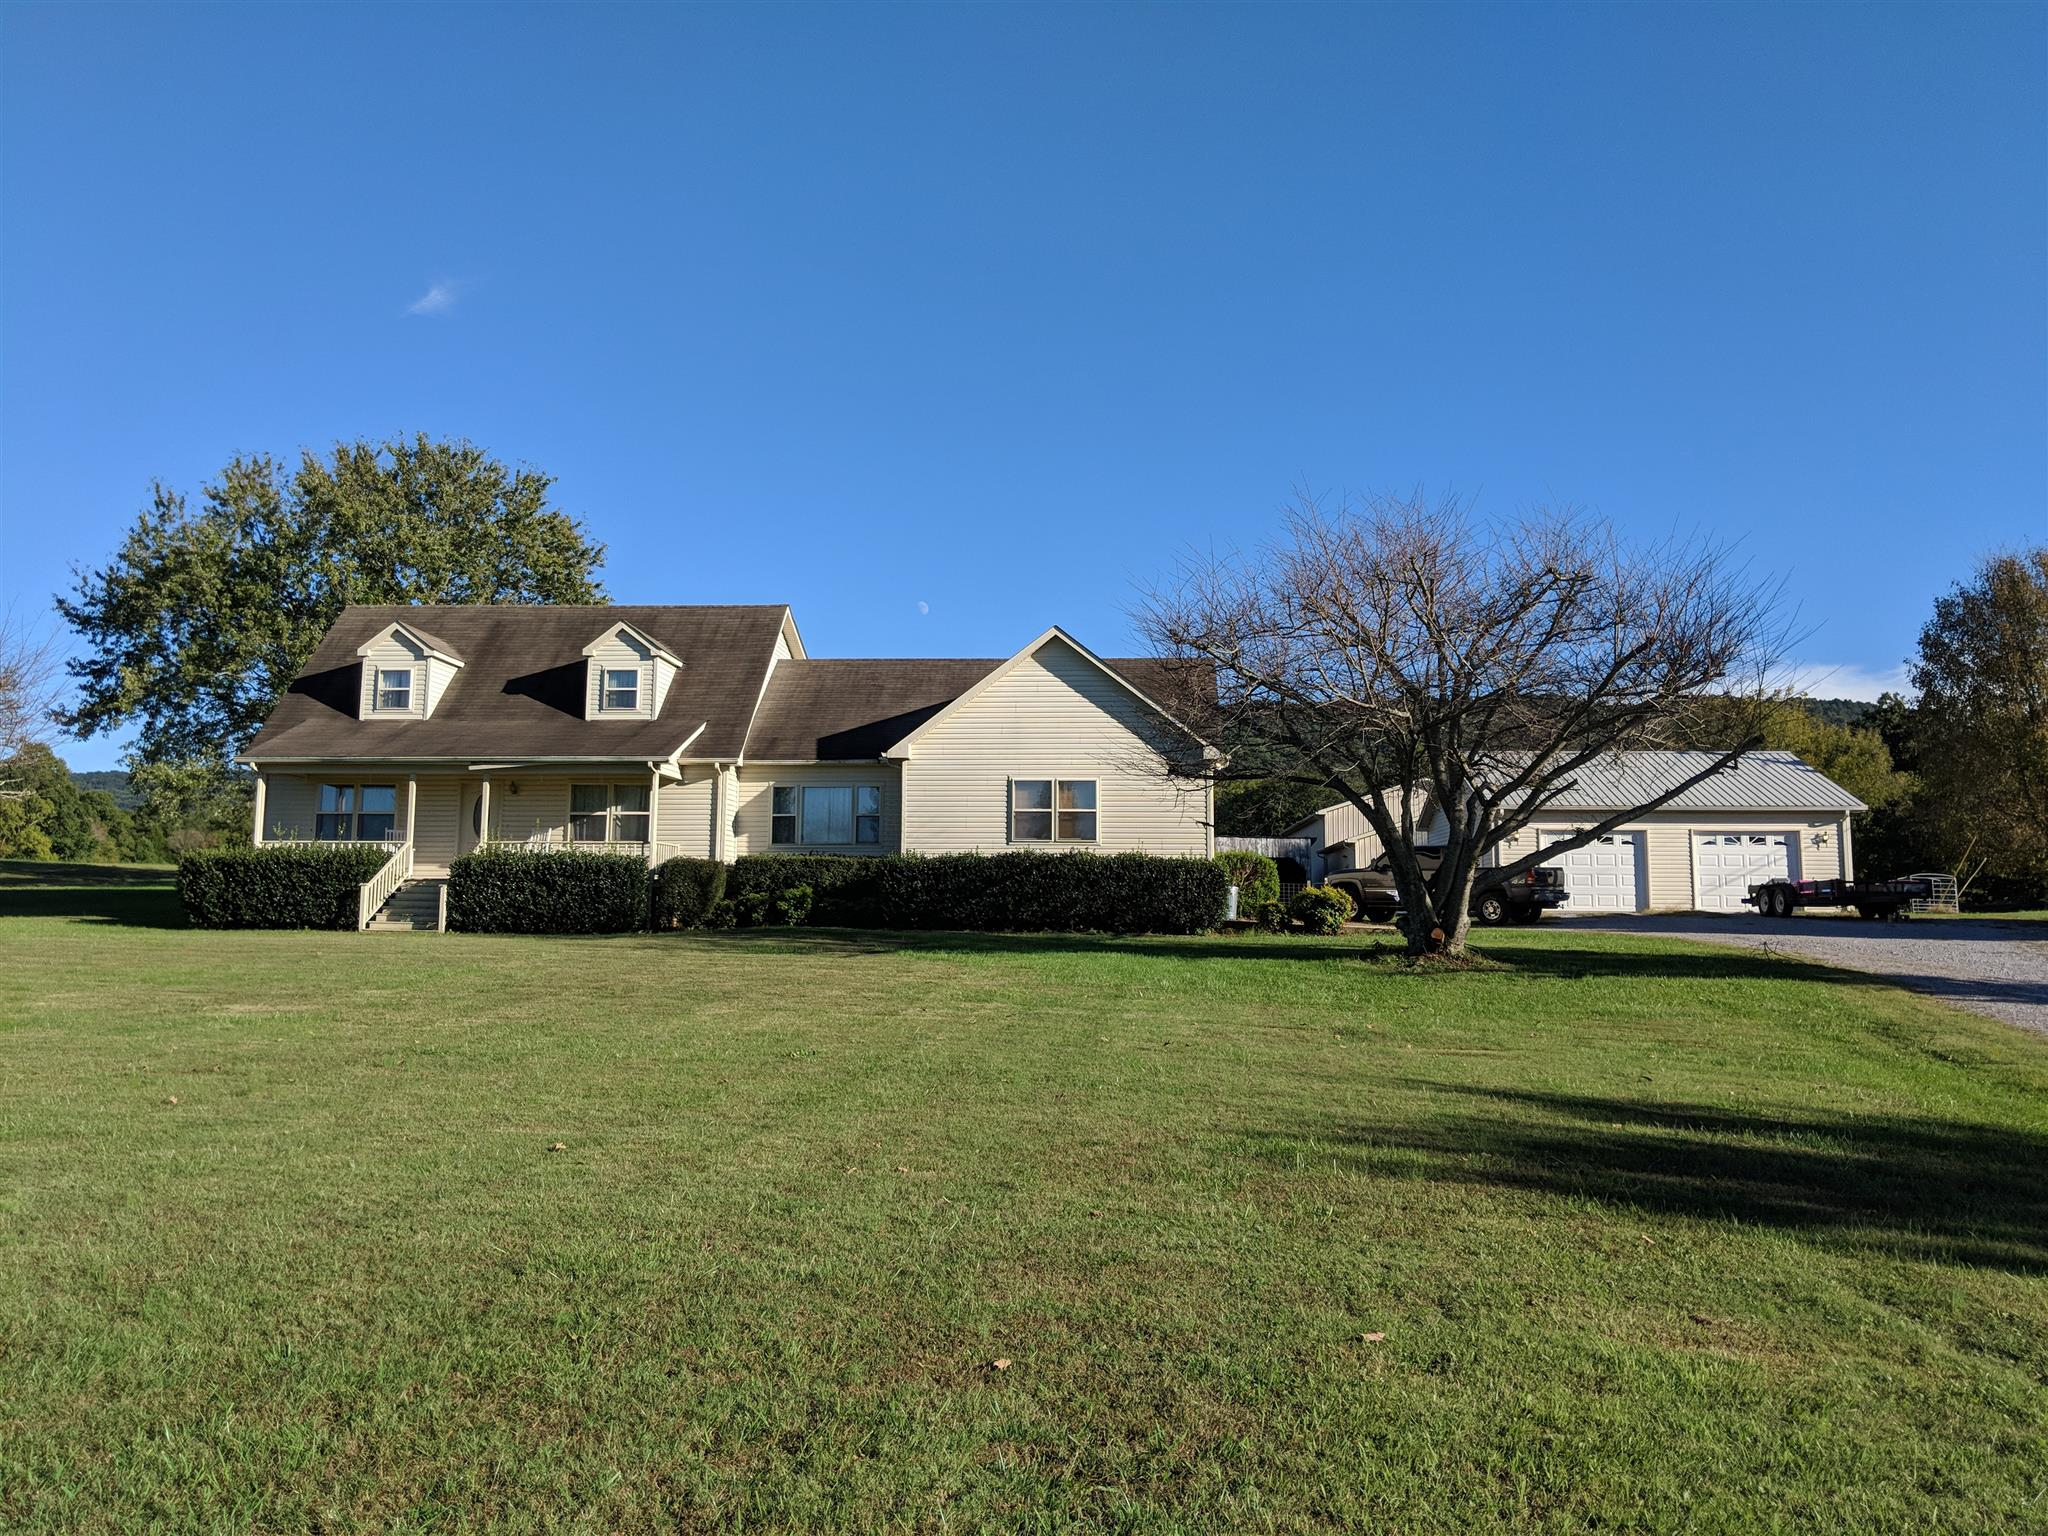 4101 Viola Rd, McMinnville, TN 37110 - McMinnville, TN real estate listing